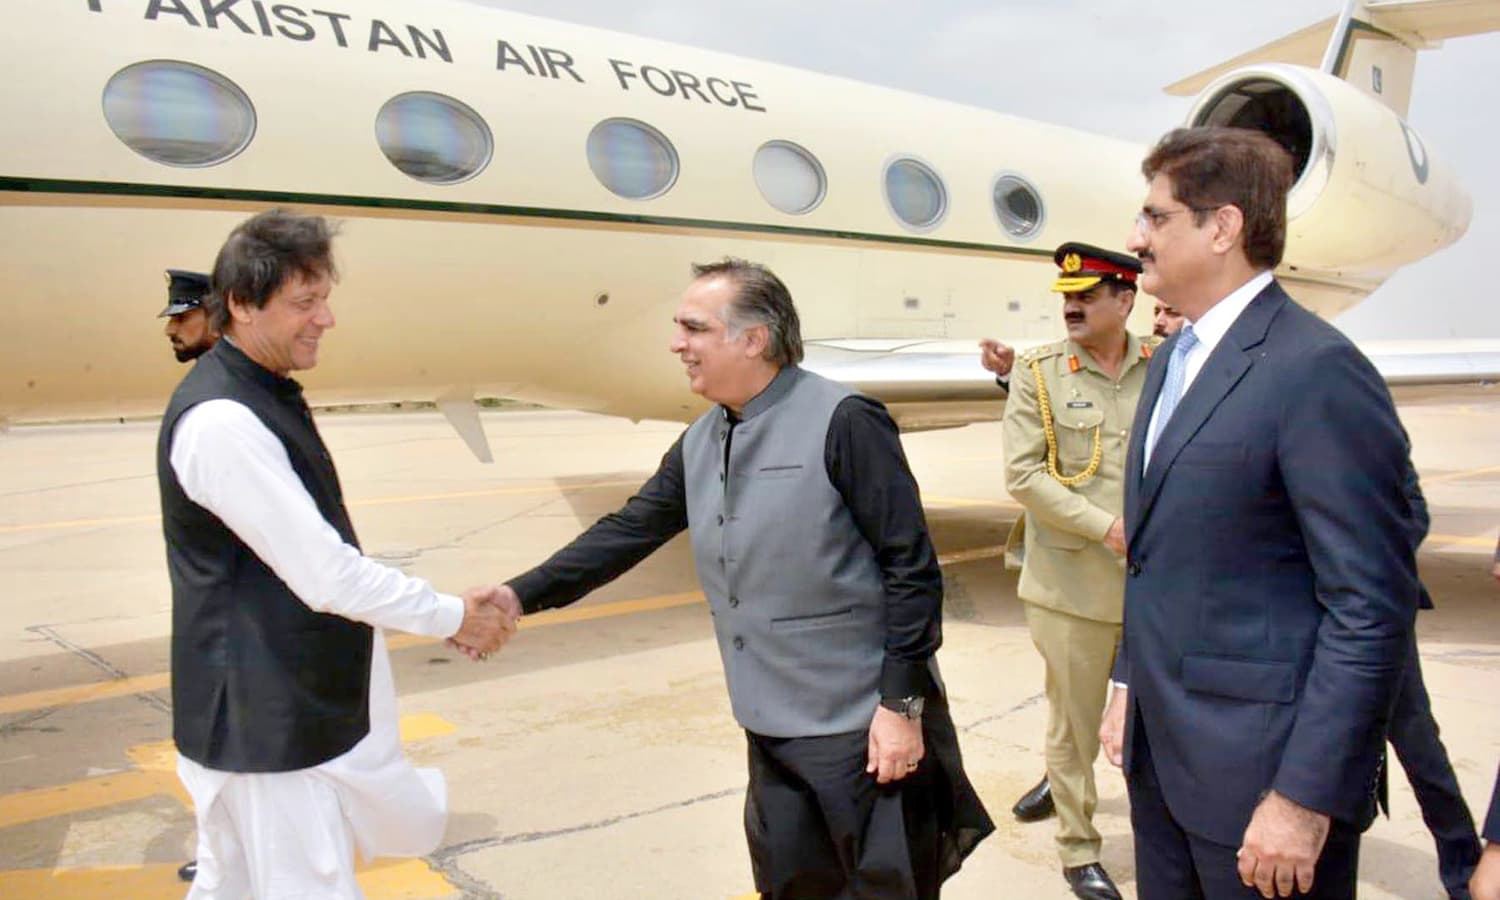 PM Imran Khan being received by Governor Sindh Imran Ismail and Chief Minister Sindh Syed Murad Ali Shah upon arrival in Karachi. —APP